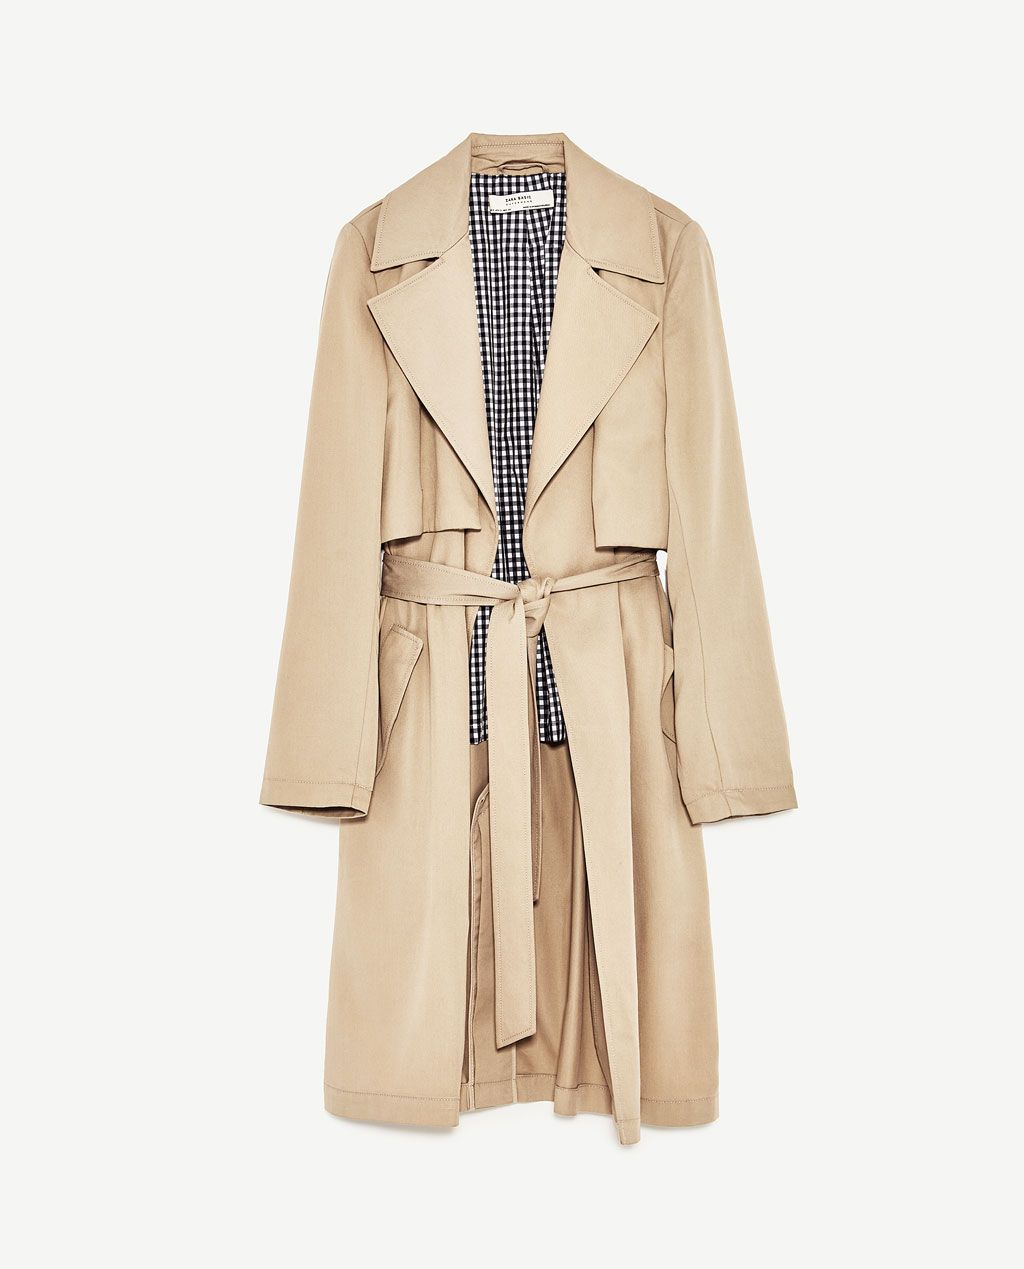 b487db54f653 Image 11 of FLOWING TRENCH COAT WITH GINGHAM CHECK LINING from Zara ...